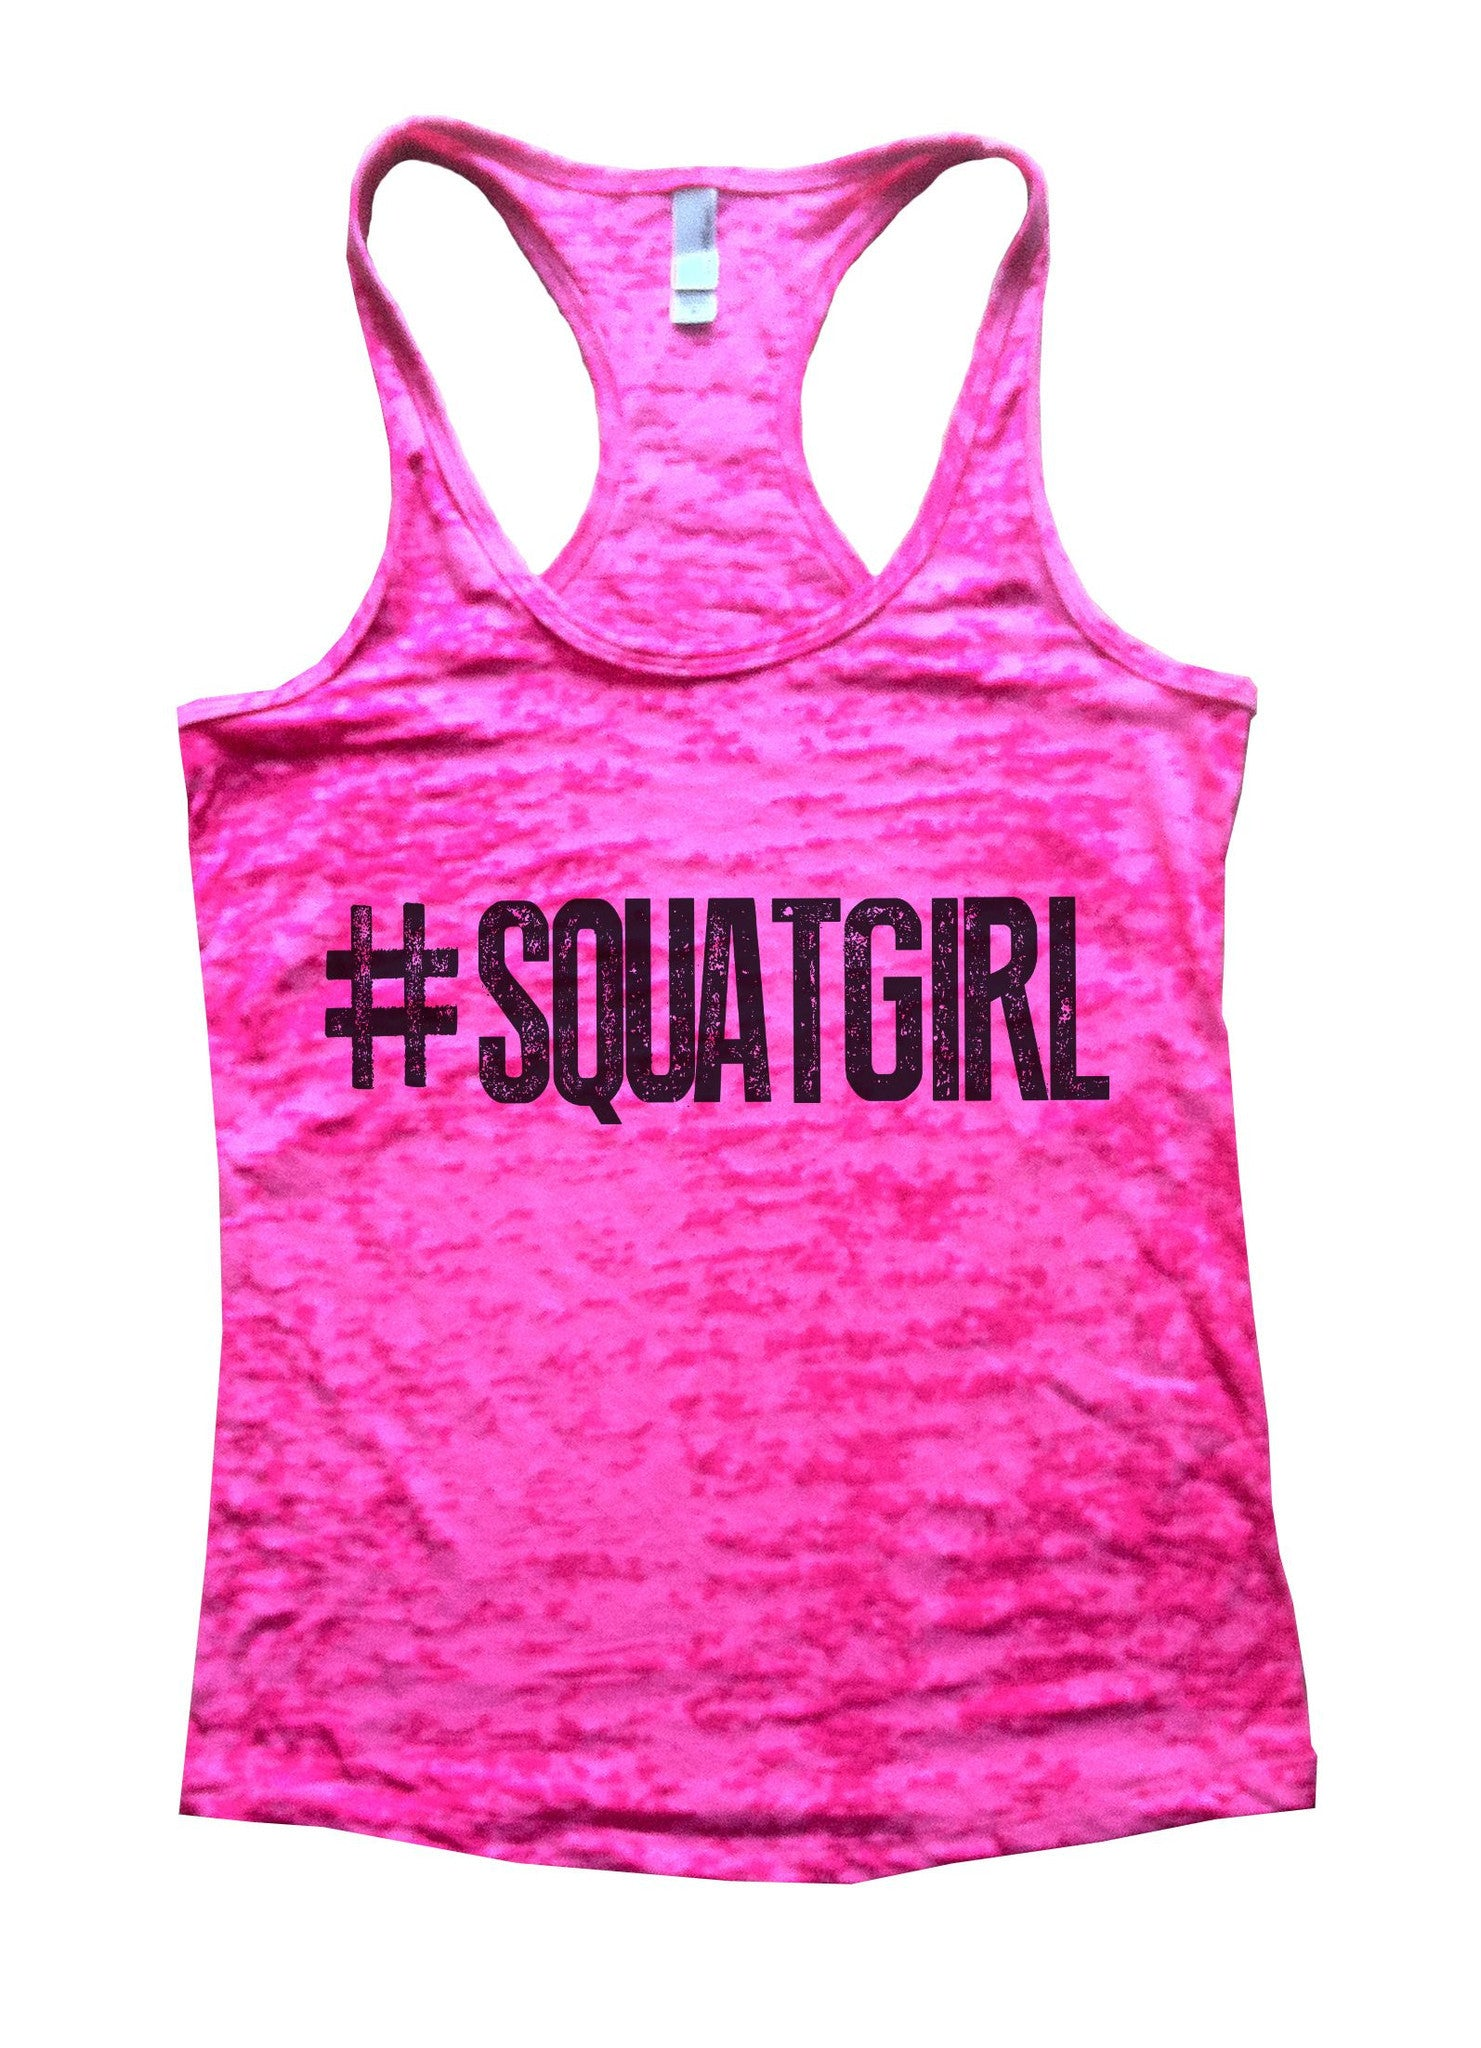 SquatGirl Burnout Tank Top By BurnoutTankTops.com - 637 - Funny Shirts Tank Tops Burnouts and Triblends  - 4